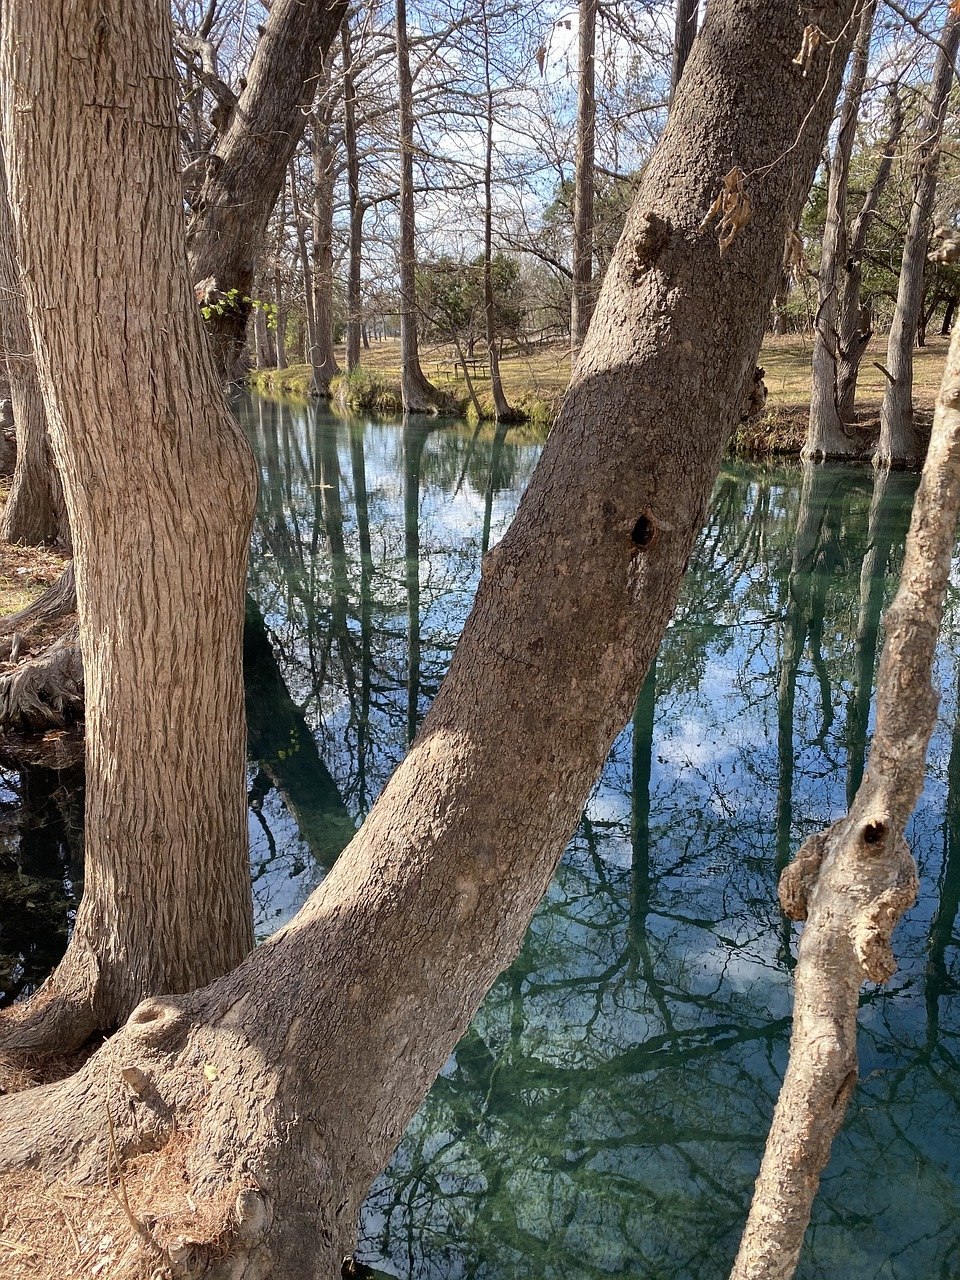 Delightful Location For A Perfect Weekend Getaway From San Antonio-Wimberley, Blanco River